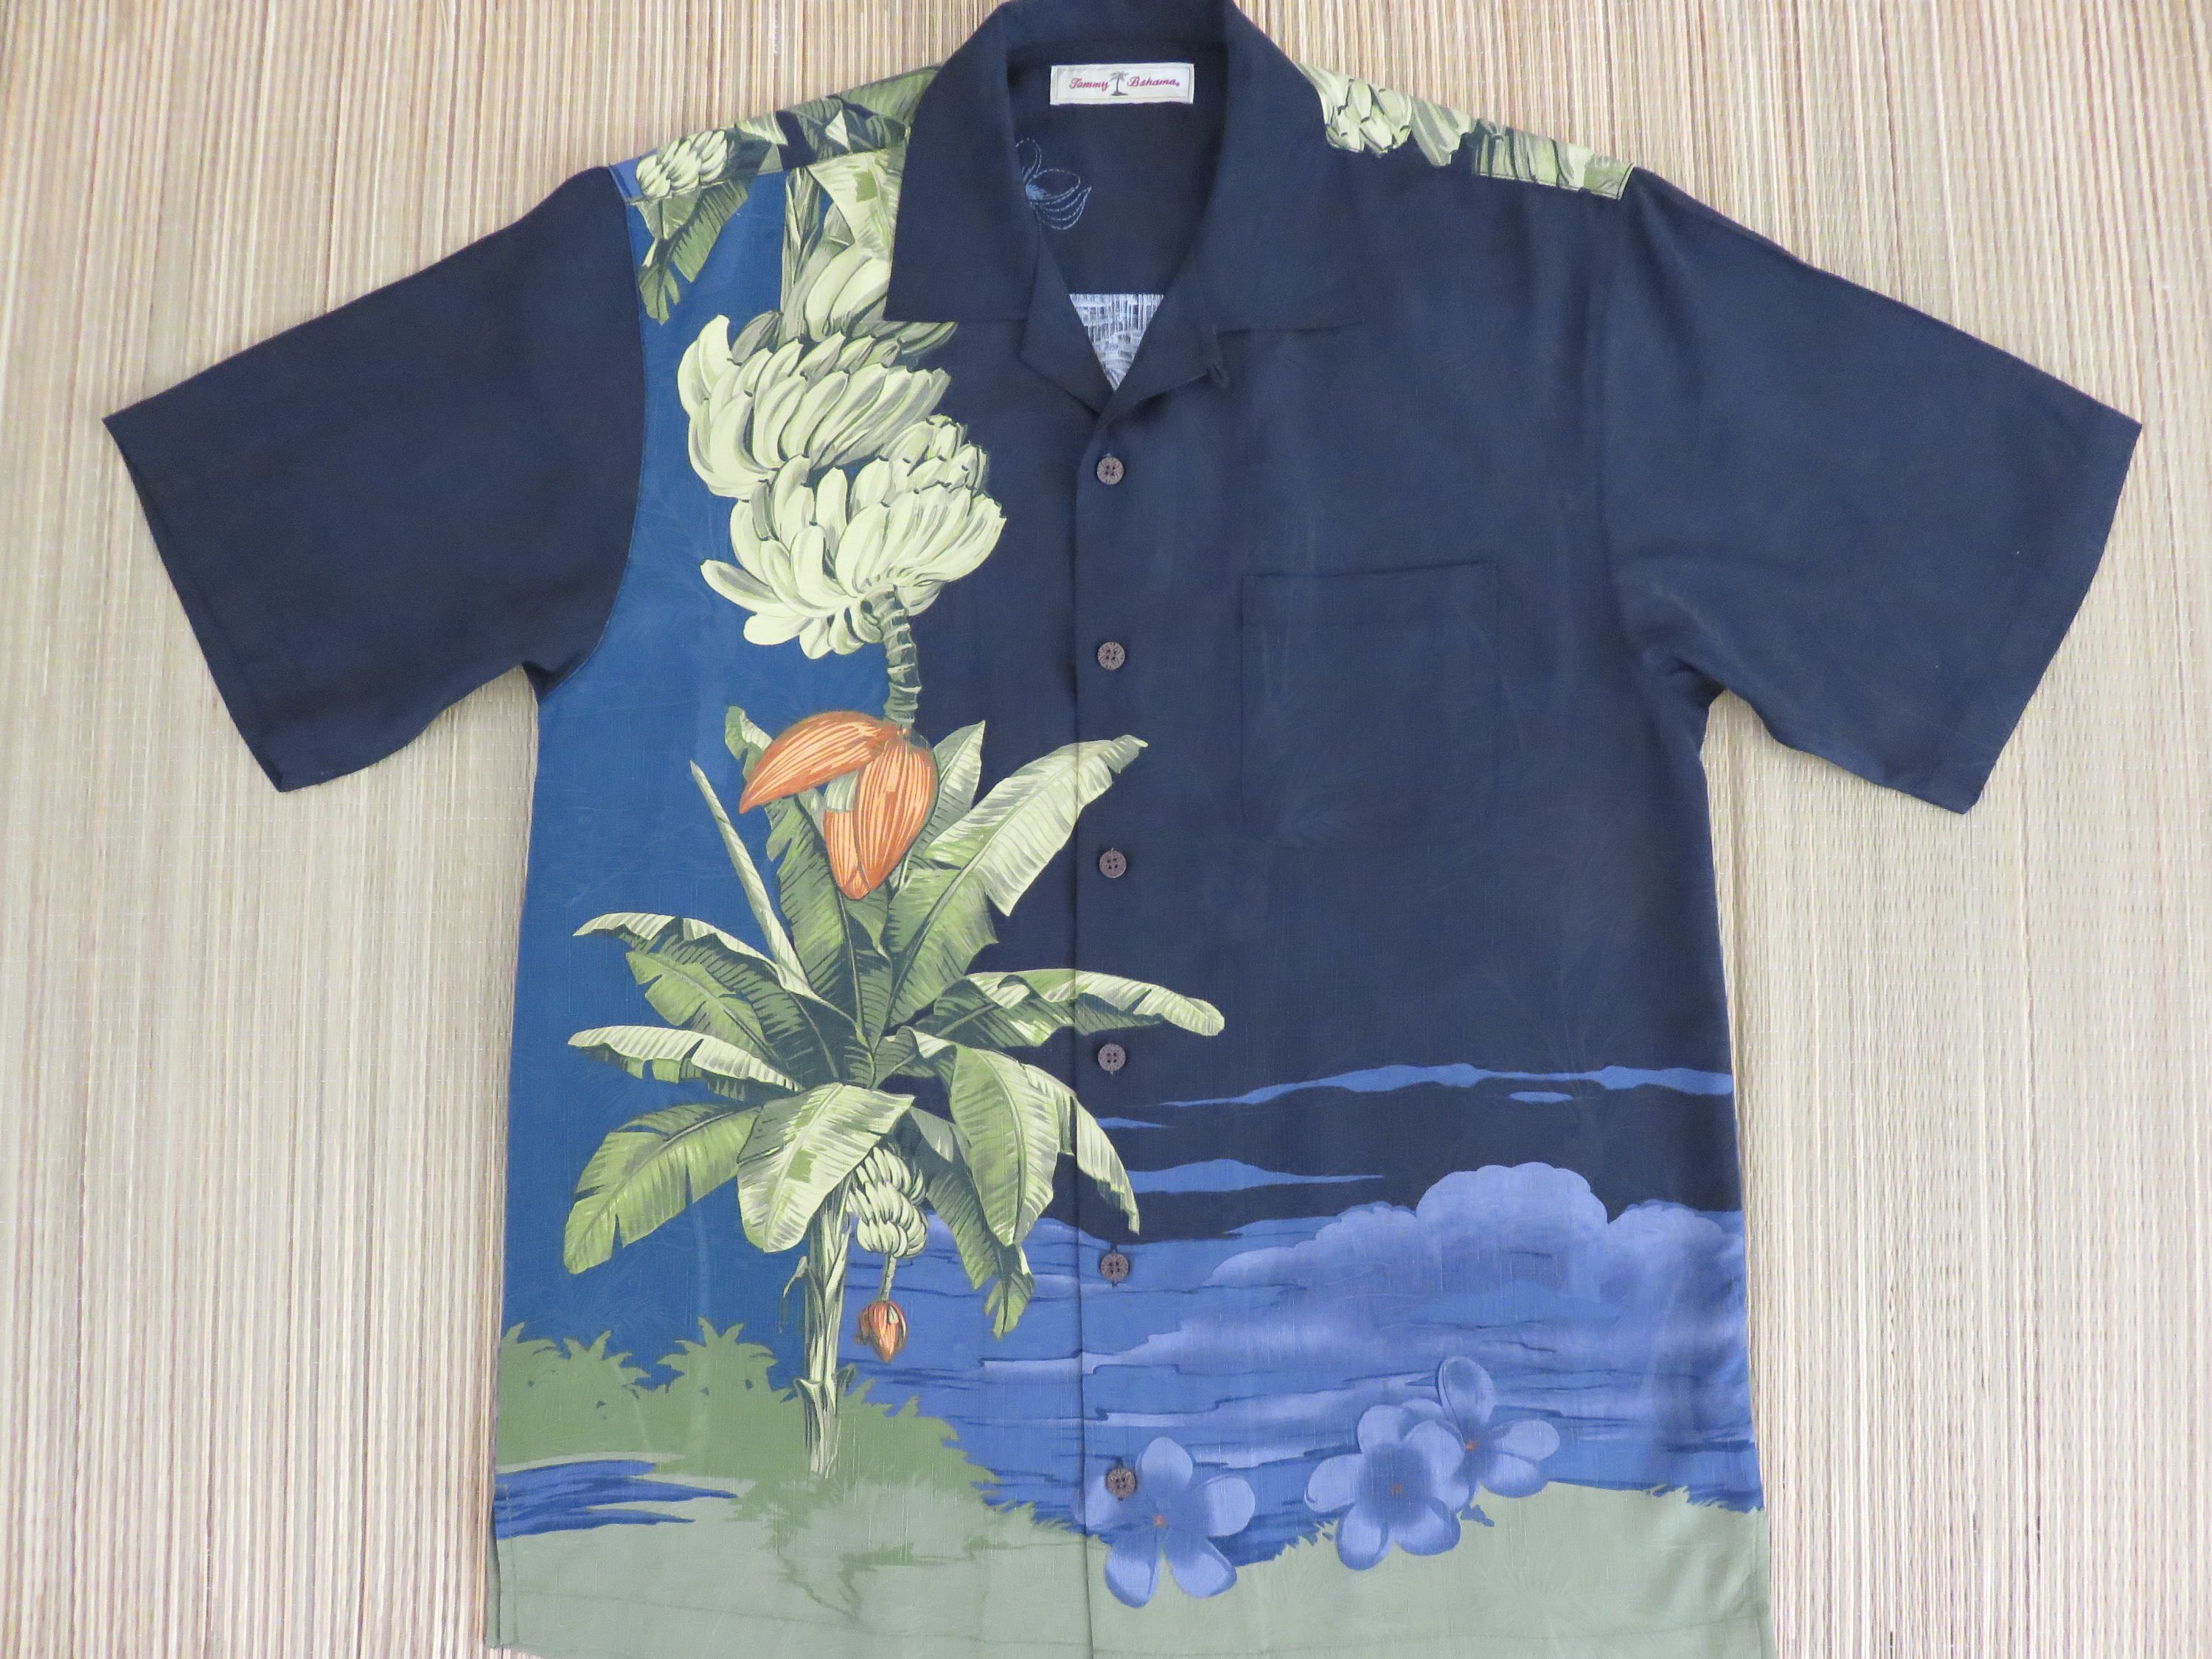 5616d766233 TOMMY BAHAMA Shirt Banana Tree Tropical Copyrighted Print Embroidered  Pulmeria Flower Silk Vintage Aloha Mens - S - Oahu Lew s Shirt Shack by ...